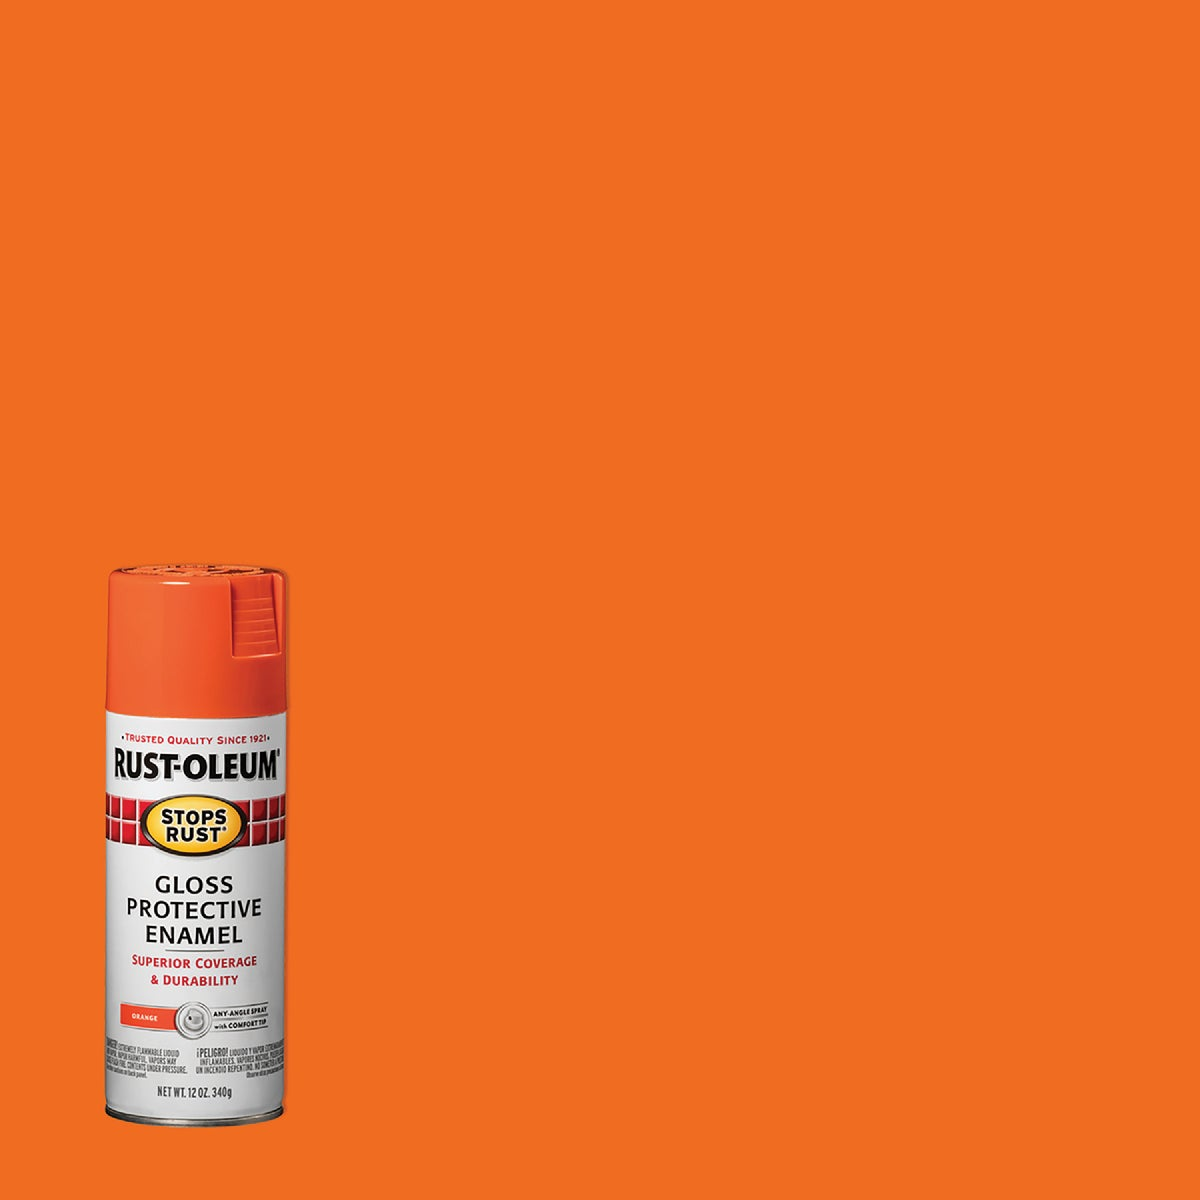 GLS ORANGE SPRAY PAINT - 214084 by Rustoleum